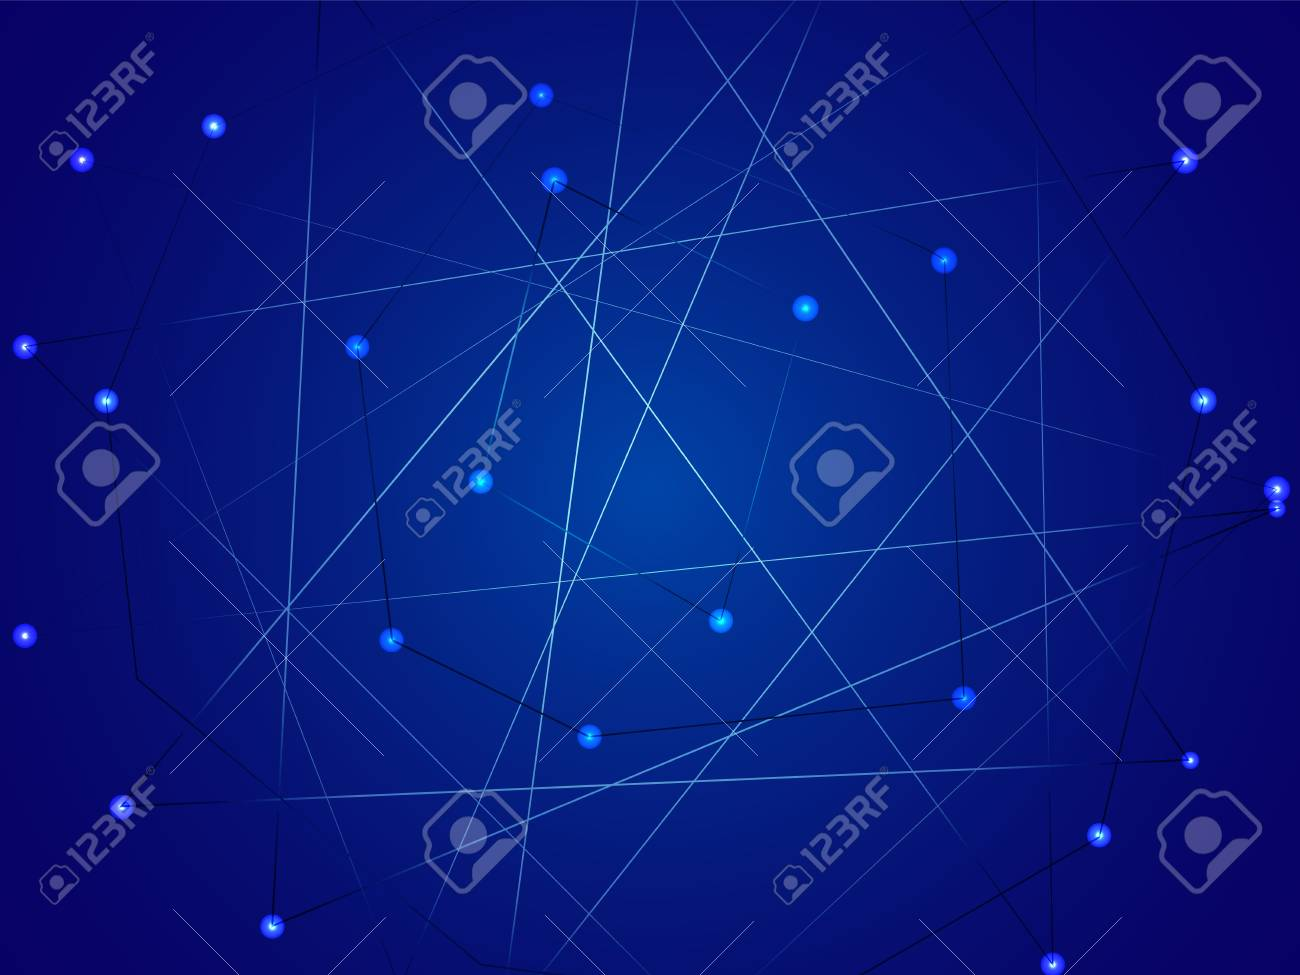 Starry Sky Map Random Schematic Bright Stars On A Blue Background 1300x975